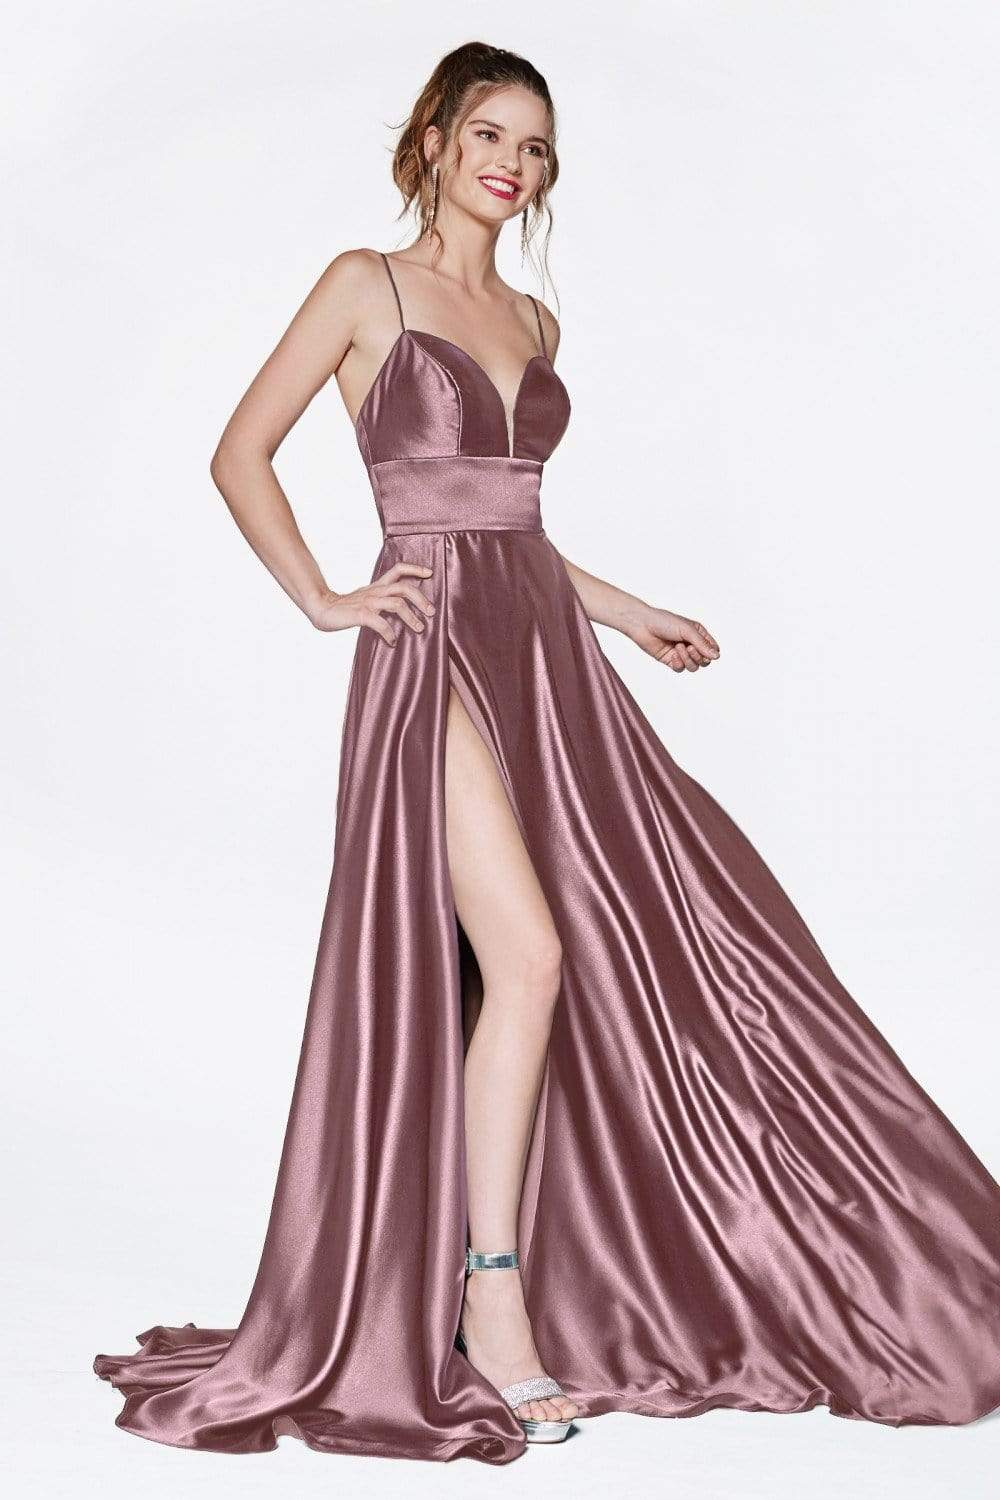 Cinderella Divine - CJ523 Sweetheart Neckline High Slit Satin Gown Prom Dresses 4 / Mauve